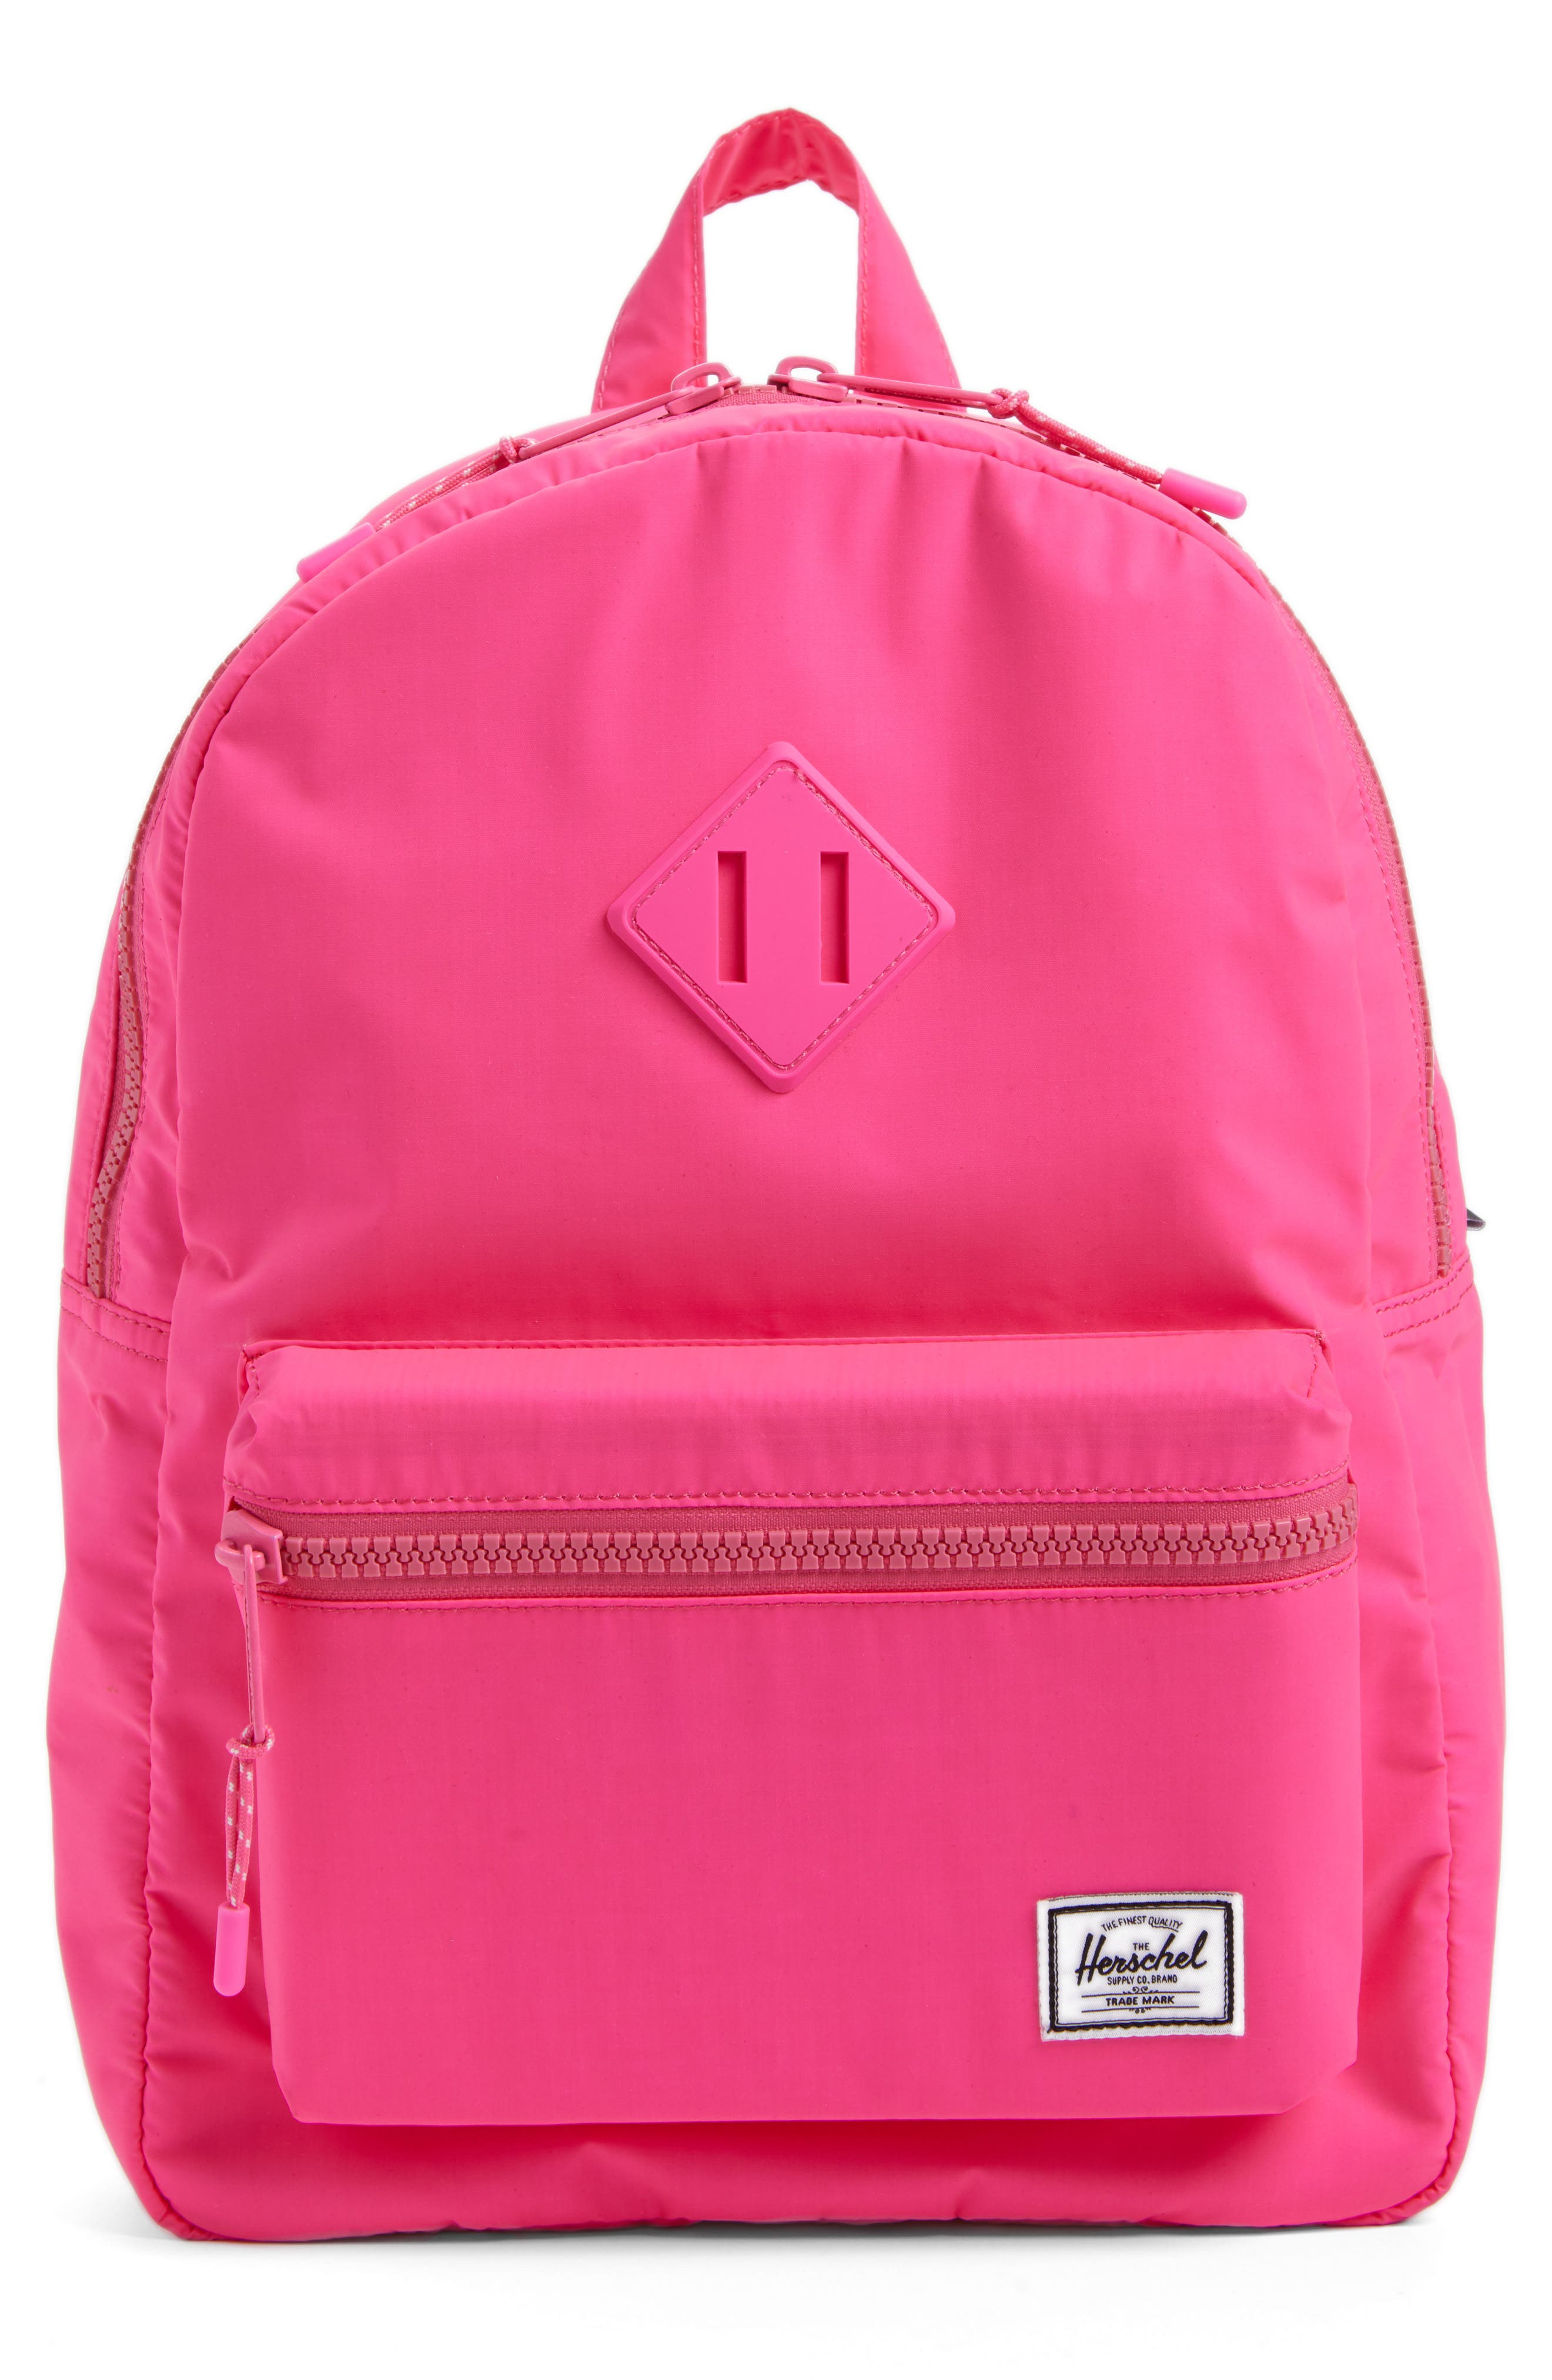 Heritage Backpack,                             Main thumbnail 1, color,                             Neon Pink Rubber